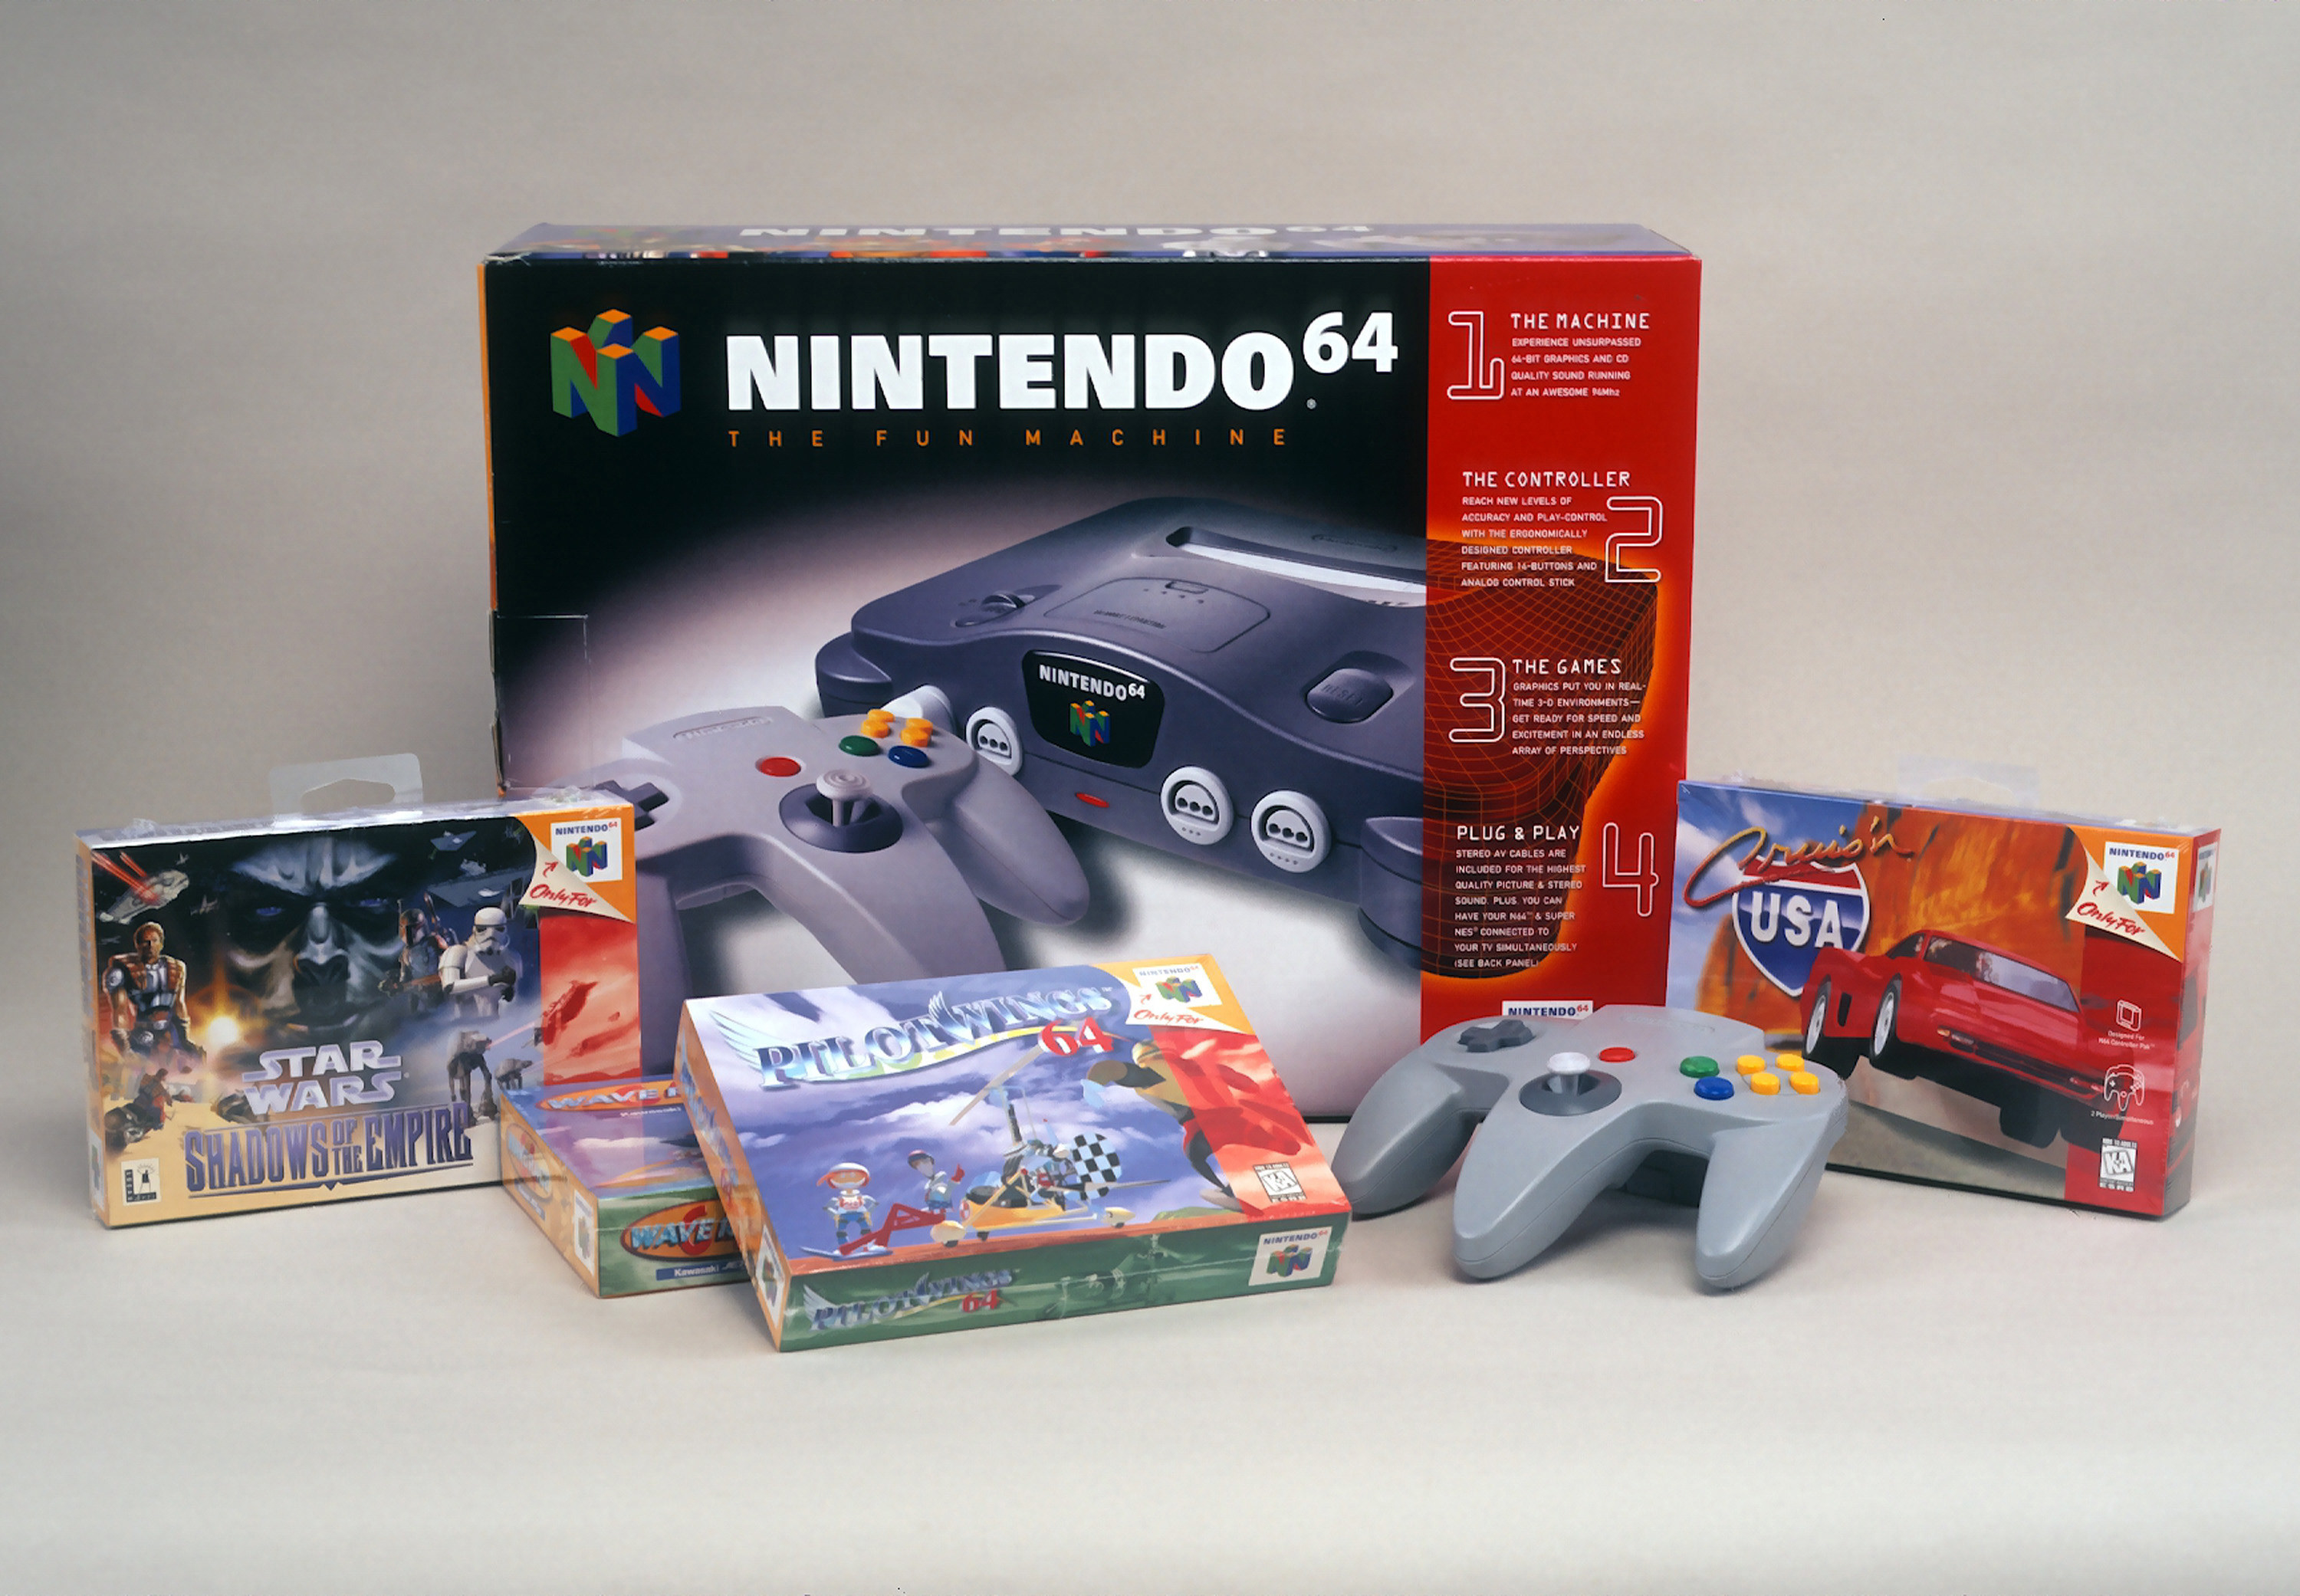 A product shot of a Nintendo 64 box alongside a controller for it and four different games